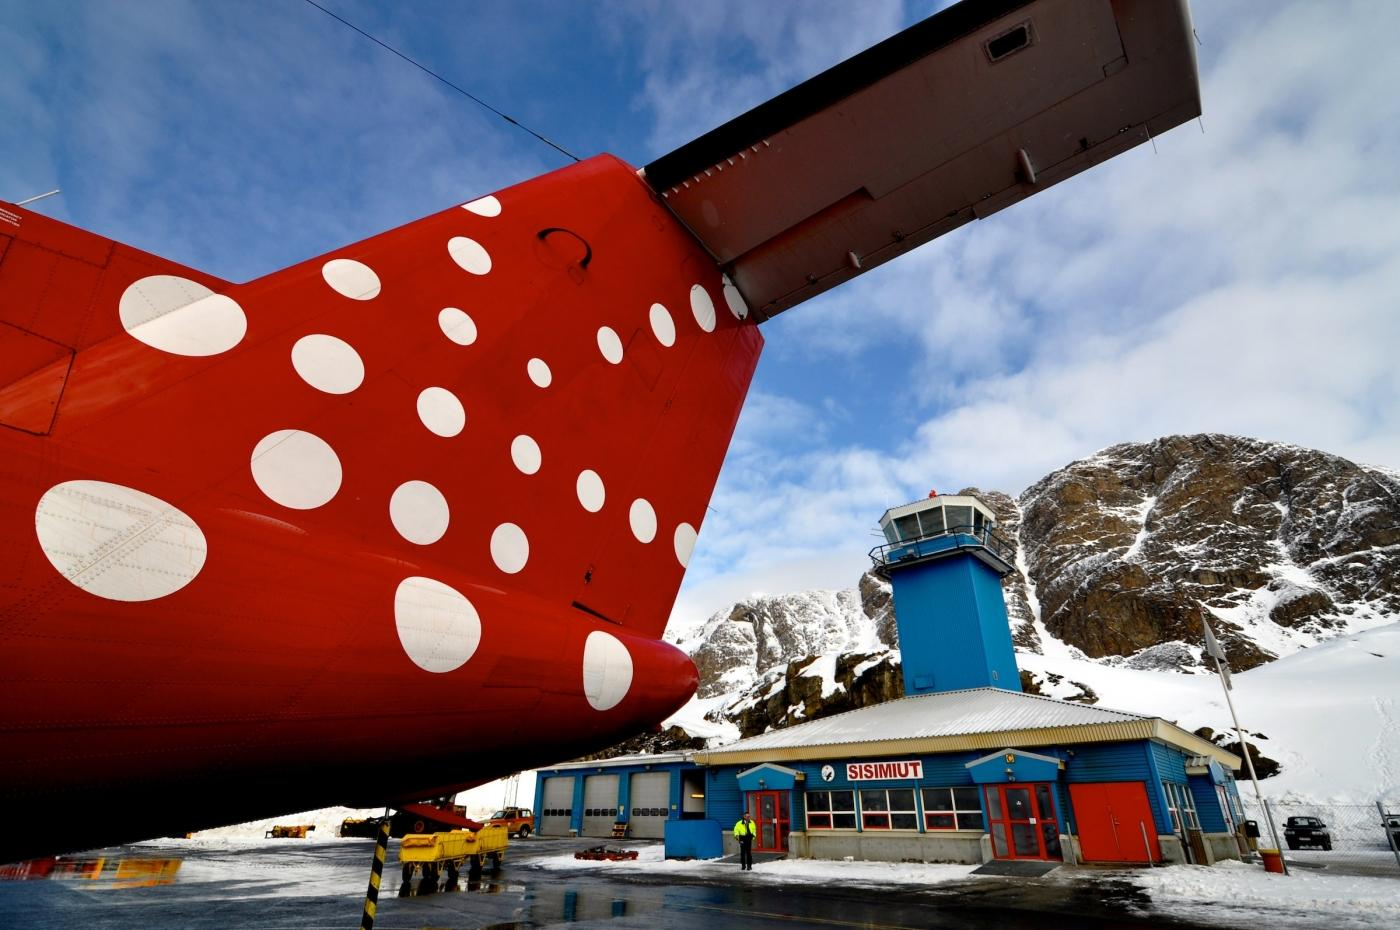 Spring weather at Sisimiut Airport in Greenland. Photo by Mads Pihl - Visit Greenland